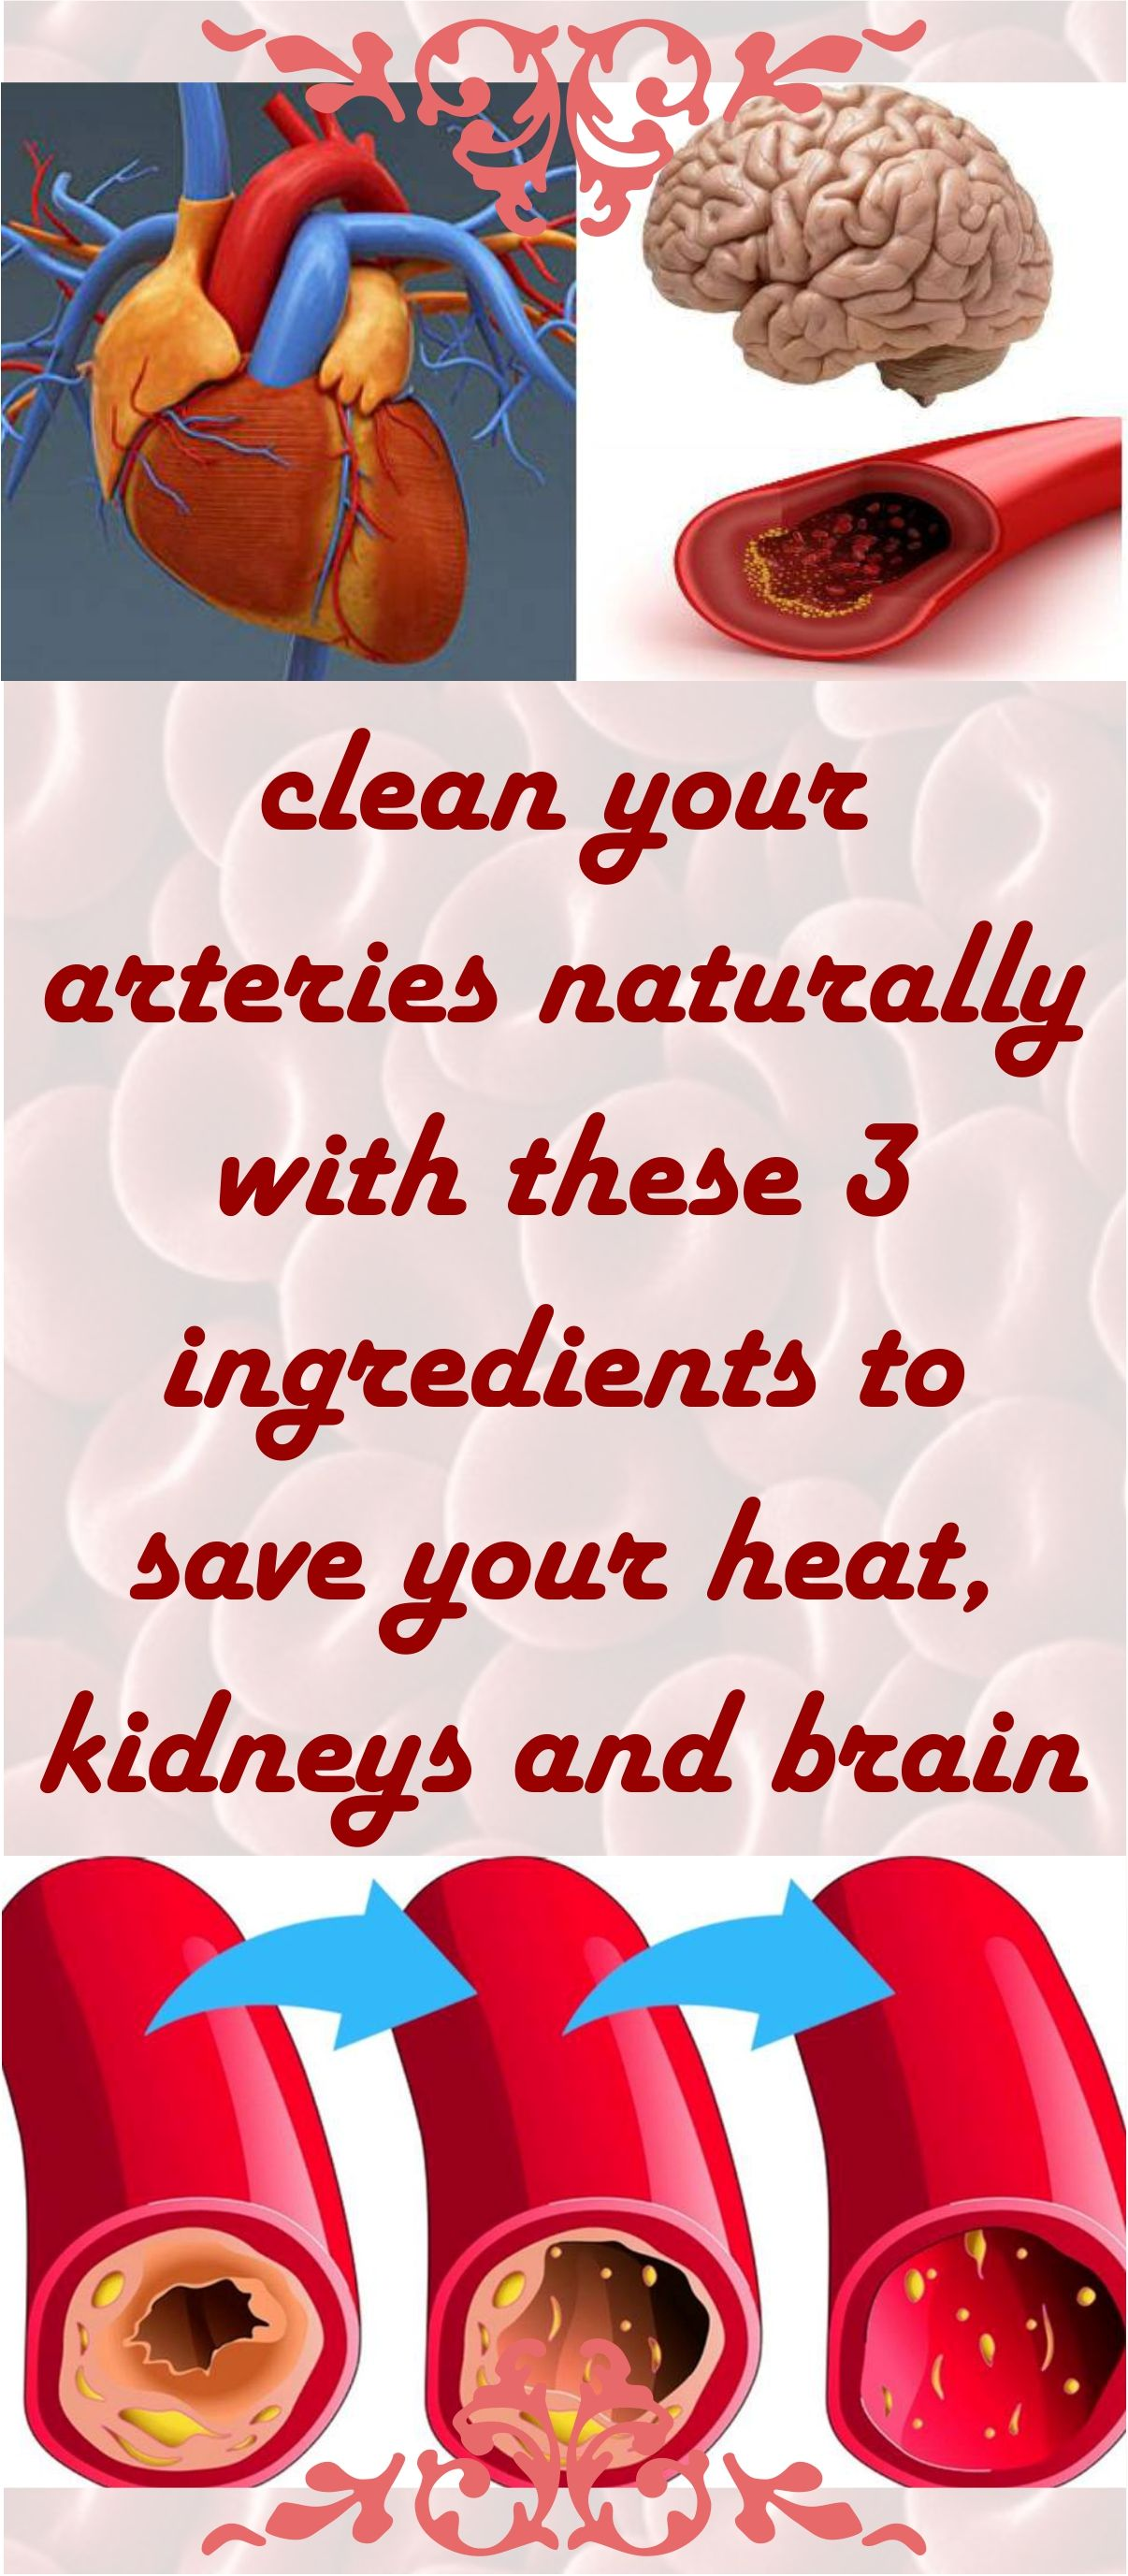 Clean Your Arteries Naturally With These 3 Ingredients To Save Your Heart Kidneys And Brain Arteries Natural Medicine Recipes Natural Health Remedies